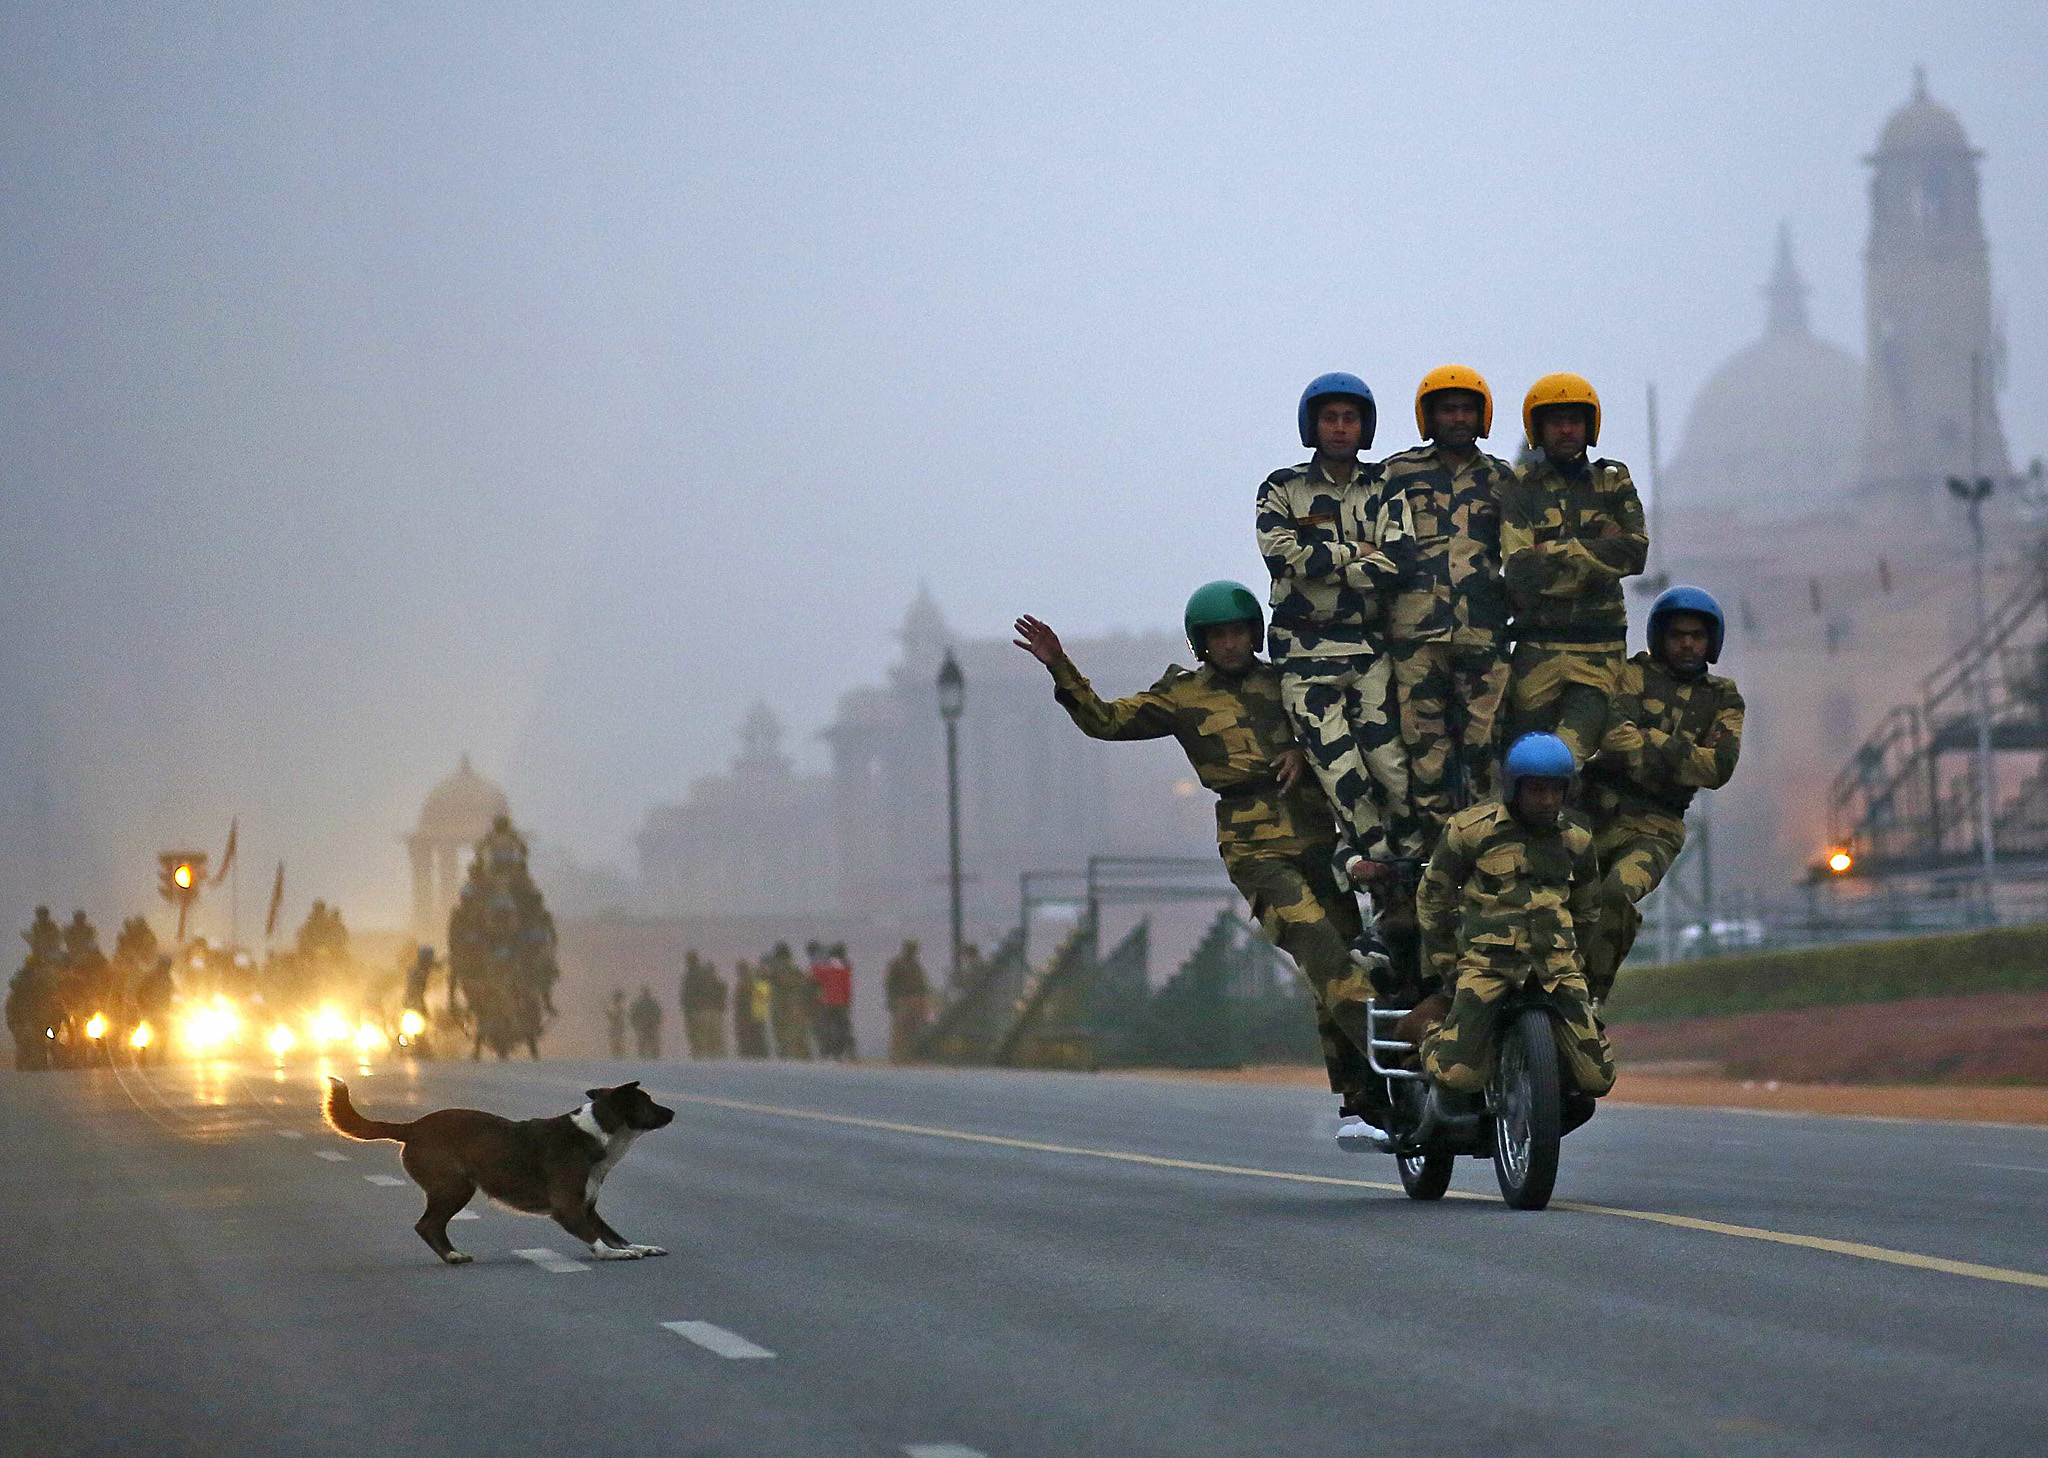 "A stray dog chases India's BSF Daredevils motorcycle riders as they perform during a rehearsal for the Republic Day parade on a winter morning in New Delhi...A stray dog chases India's Border Security Force (BSF) ""Daredevils"" motorcycle riders as they perform during a rehearsal for the Republic Day parade on a winter morning in New Delhi January 9, 2015. India will celebrate its annual Republic Day on January 26. REUTERS/Anindito Mukherjee (INDIA - Tags: ANIMALS ANNIVERSARY MILITARY POLITICS TRANSPORT ENVIRONMENT)"